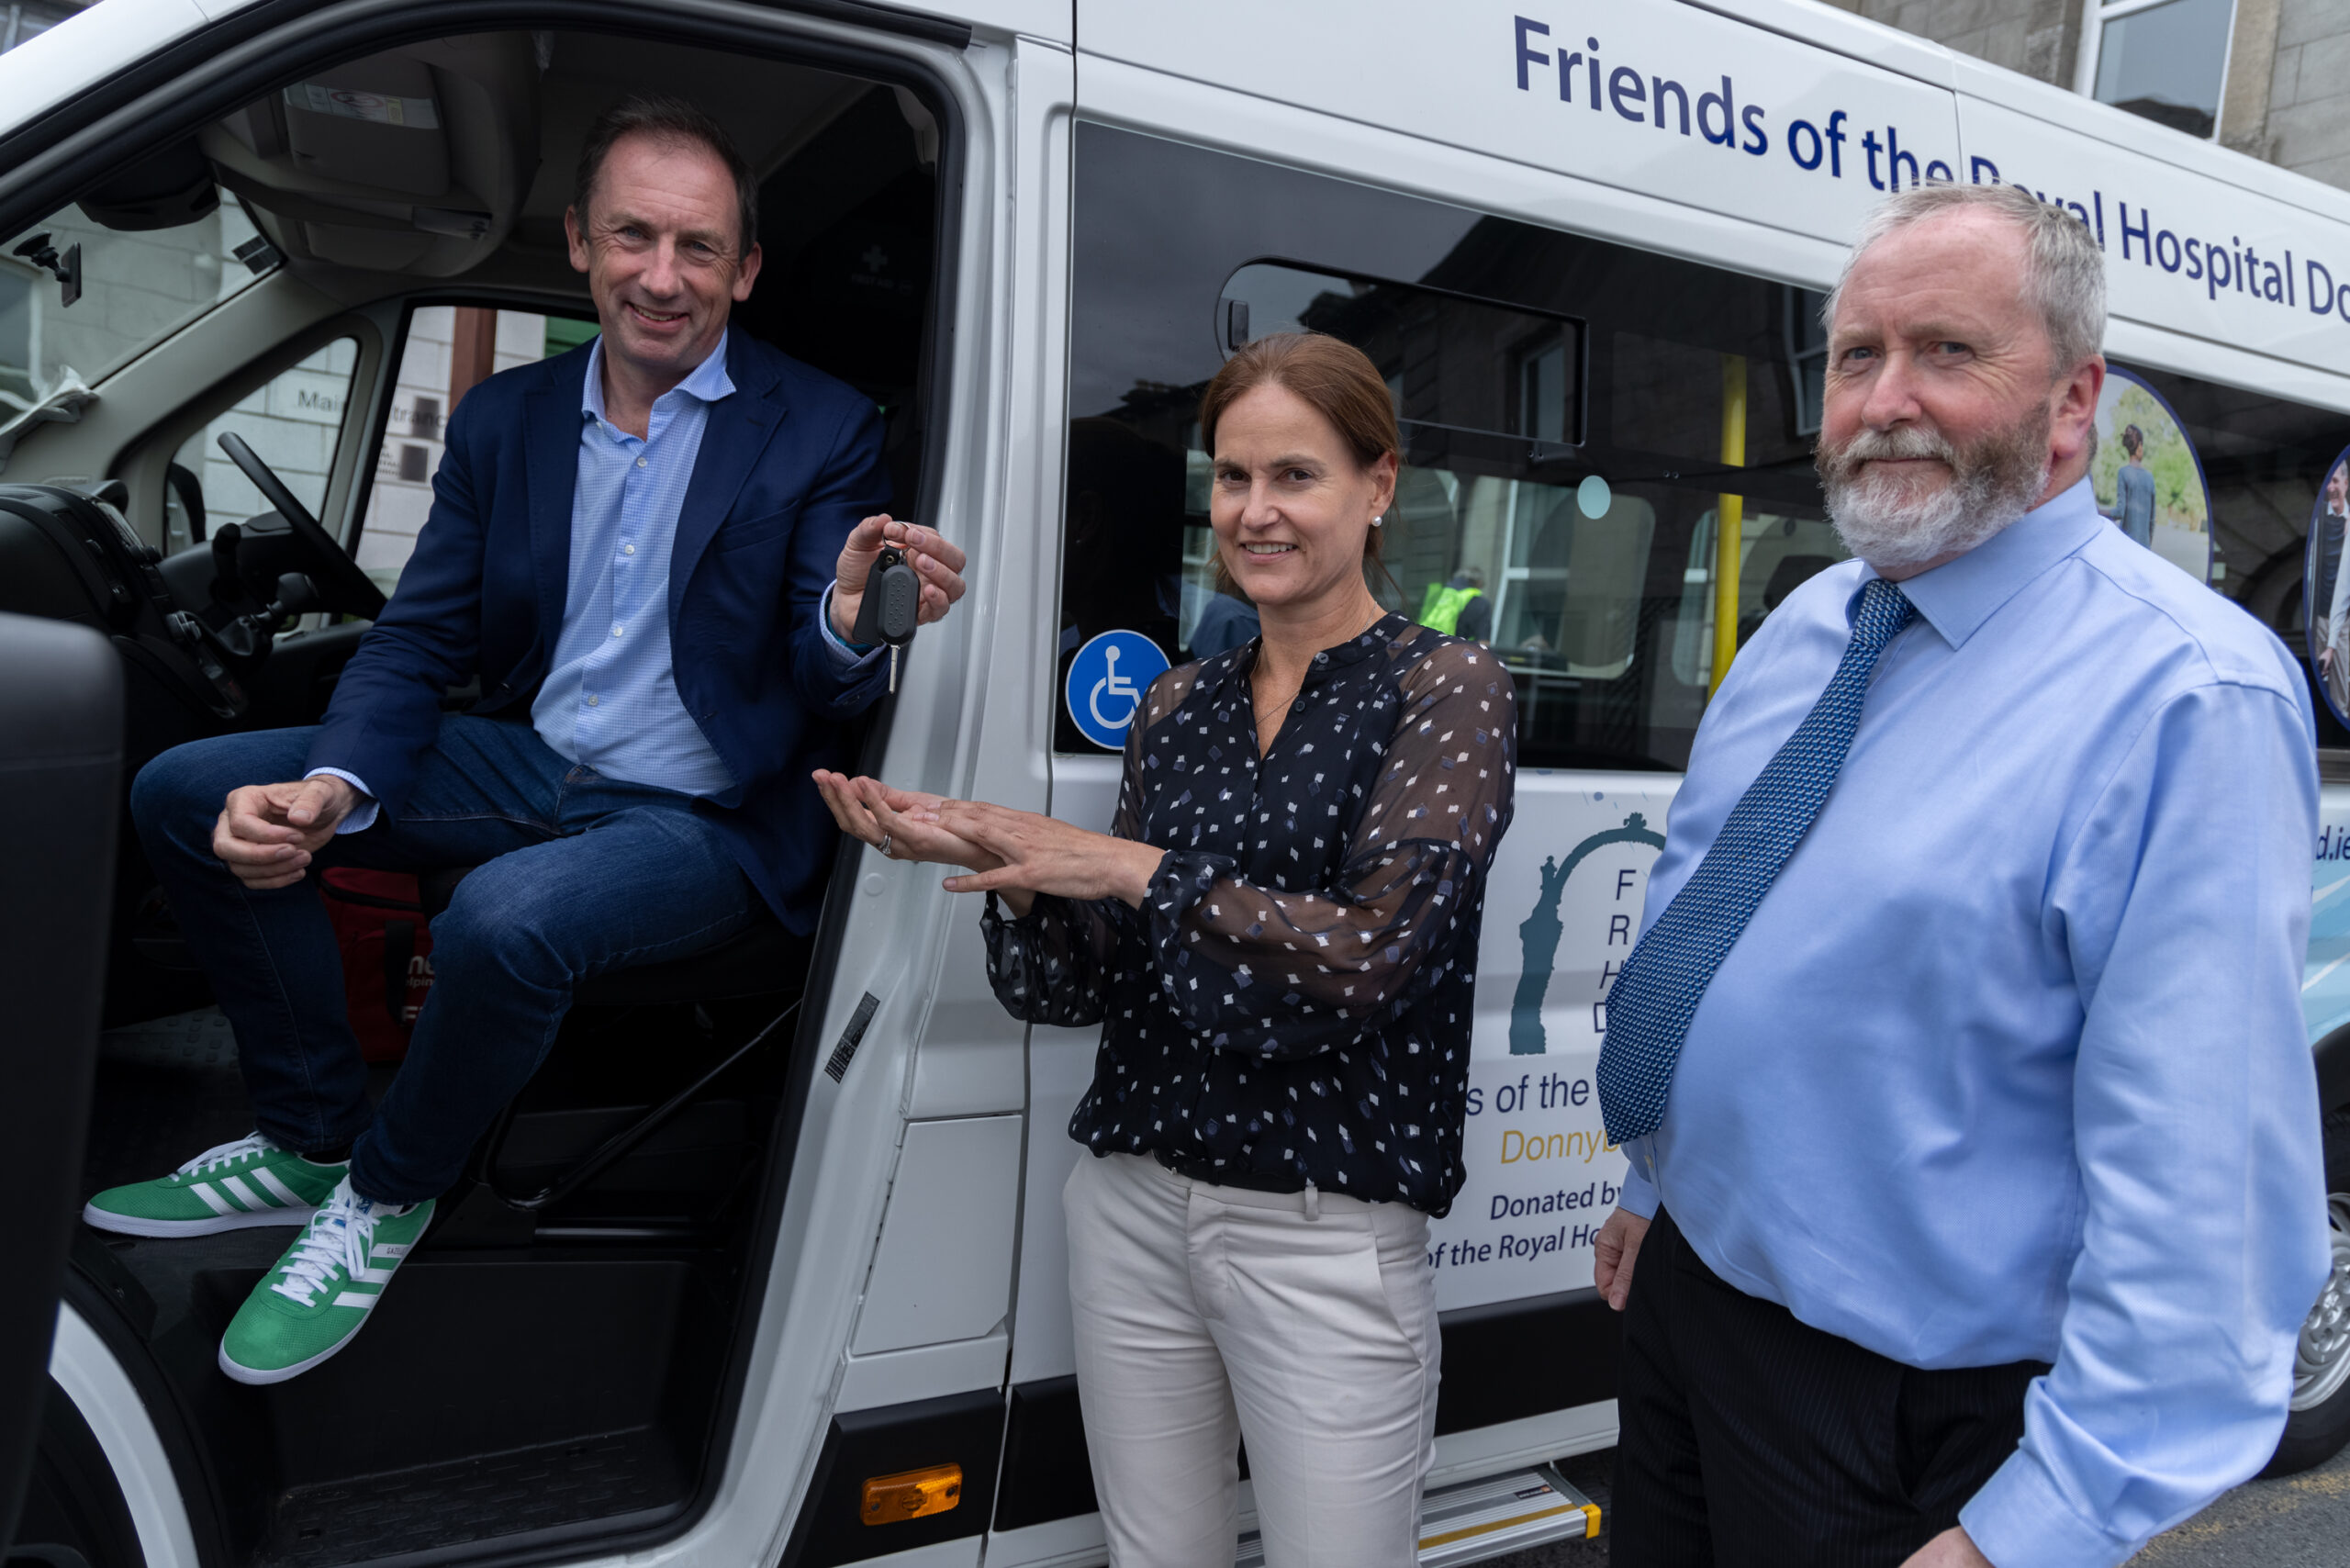 New Bus Funded by The Friends of RHD